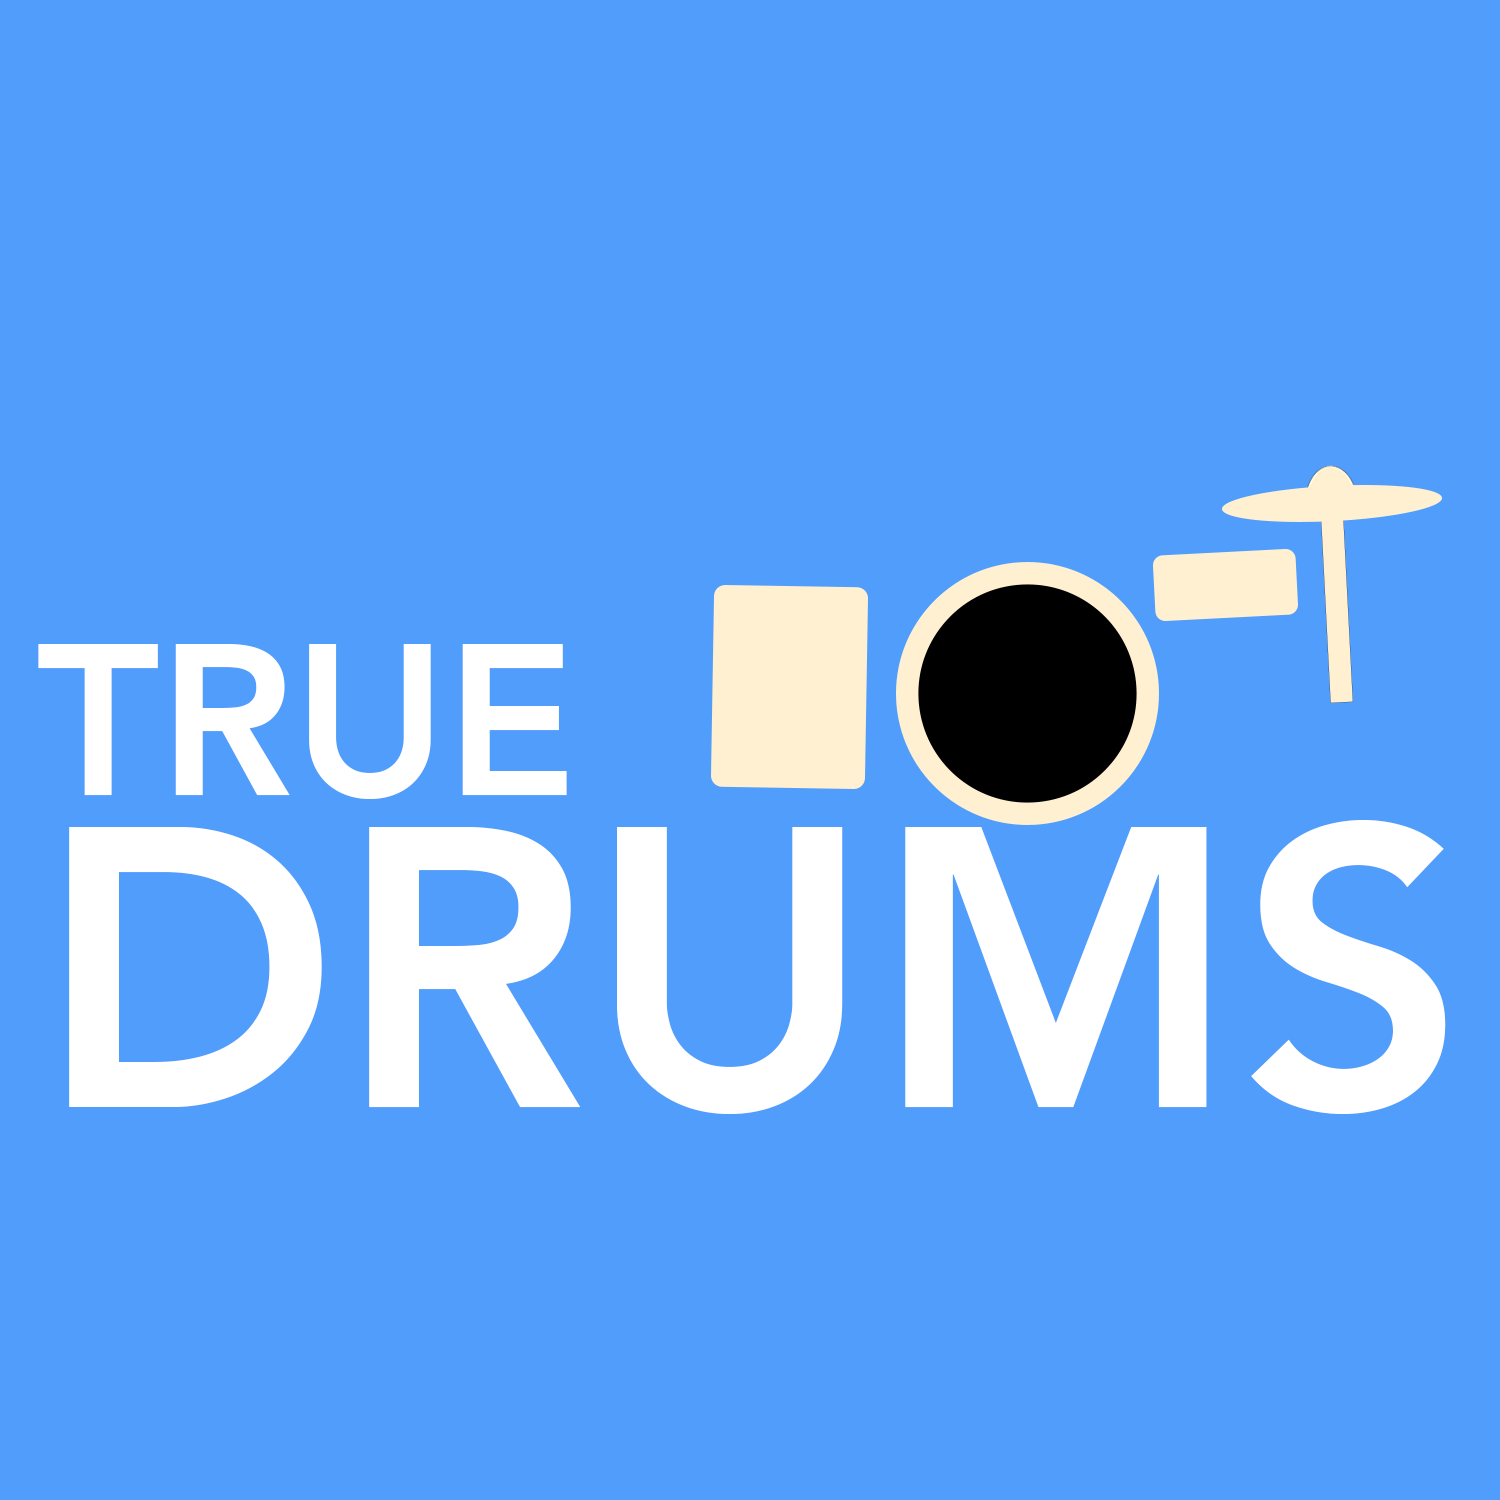 truedrums.square.png